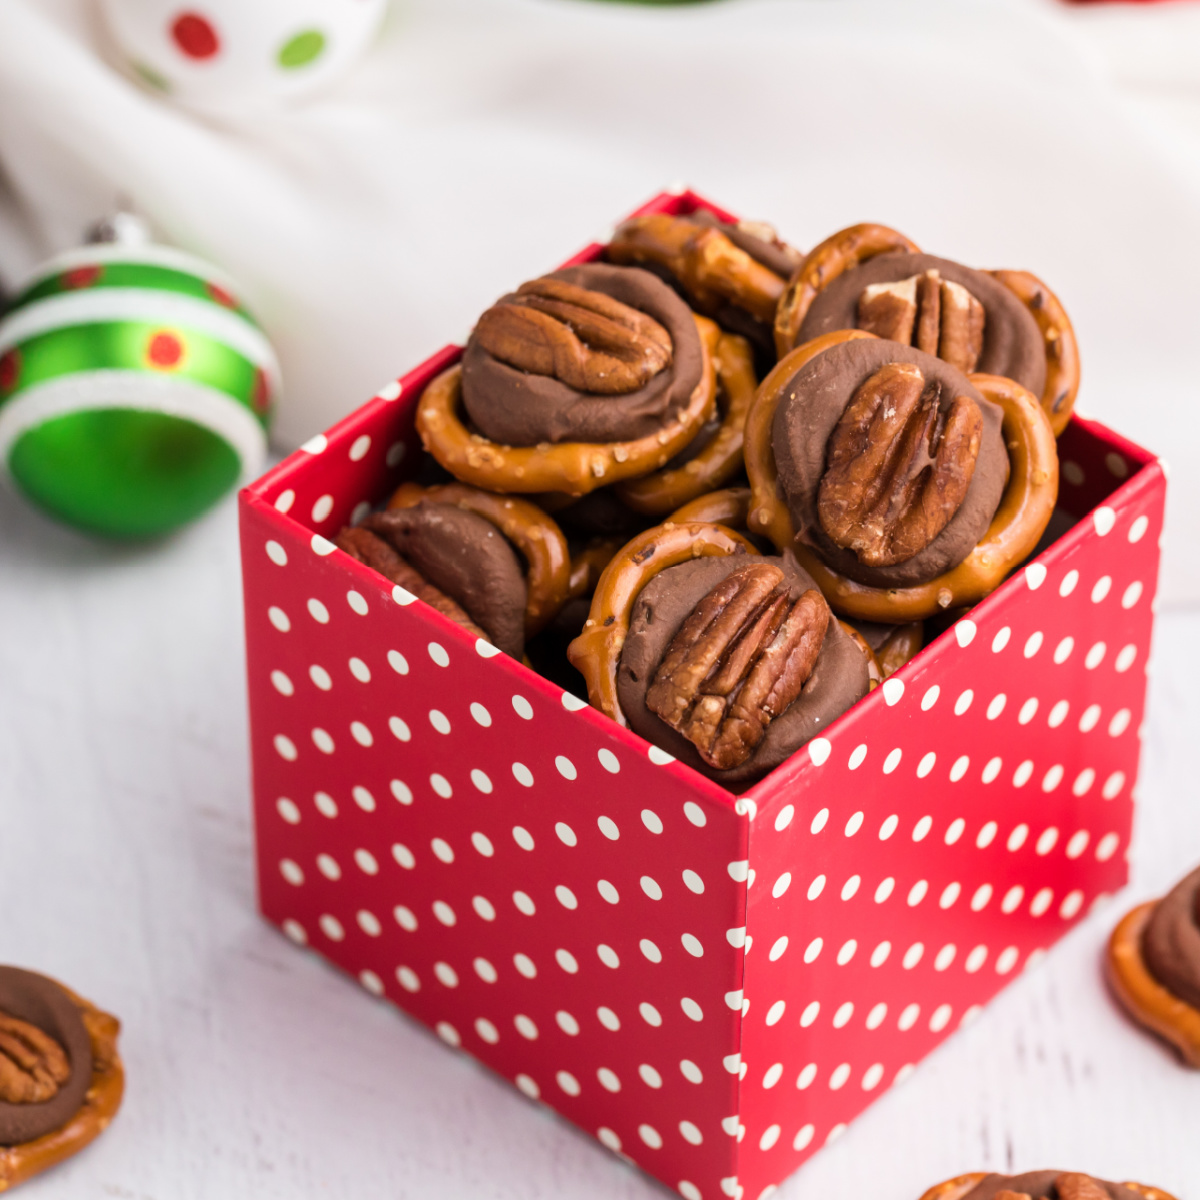 Pretzel Turtles made with Rolo candy in a red box.